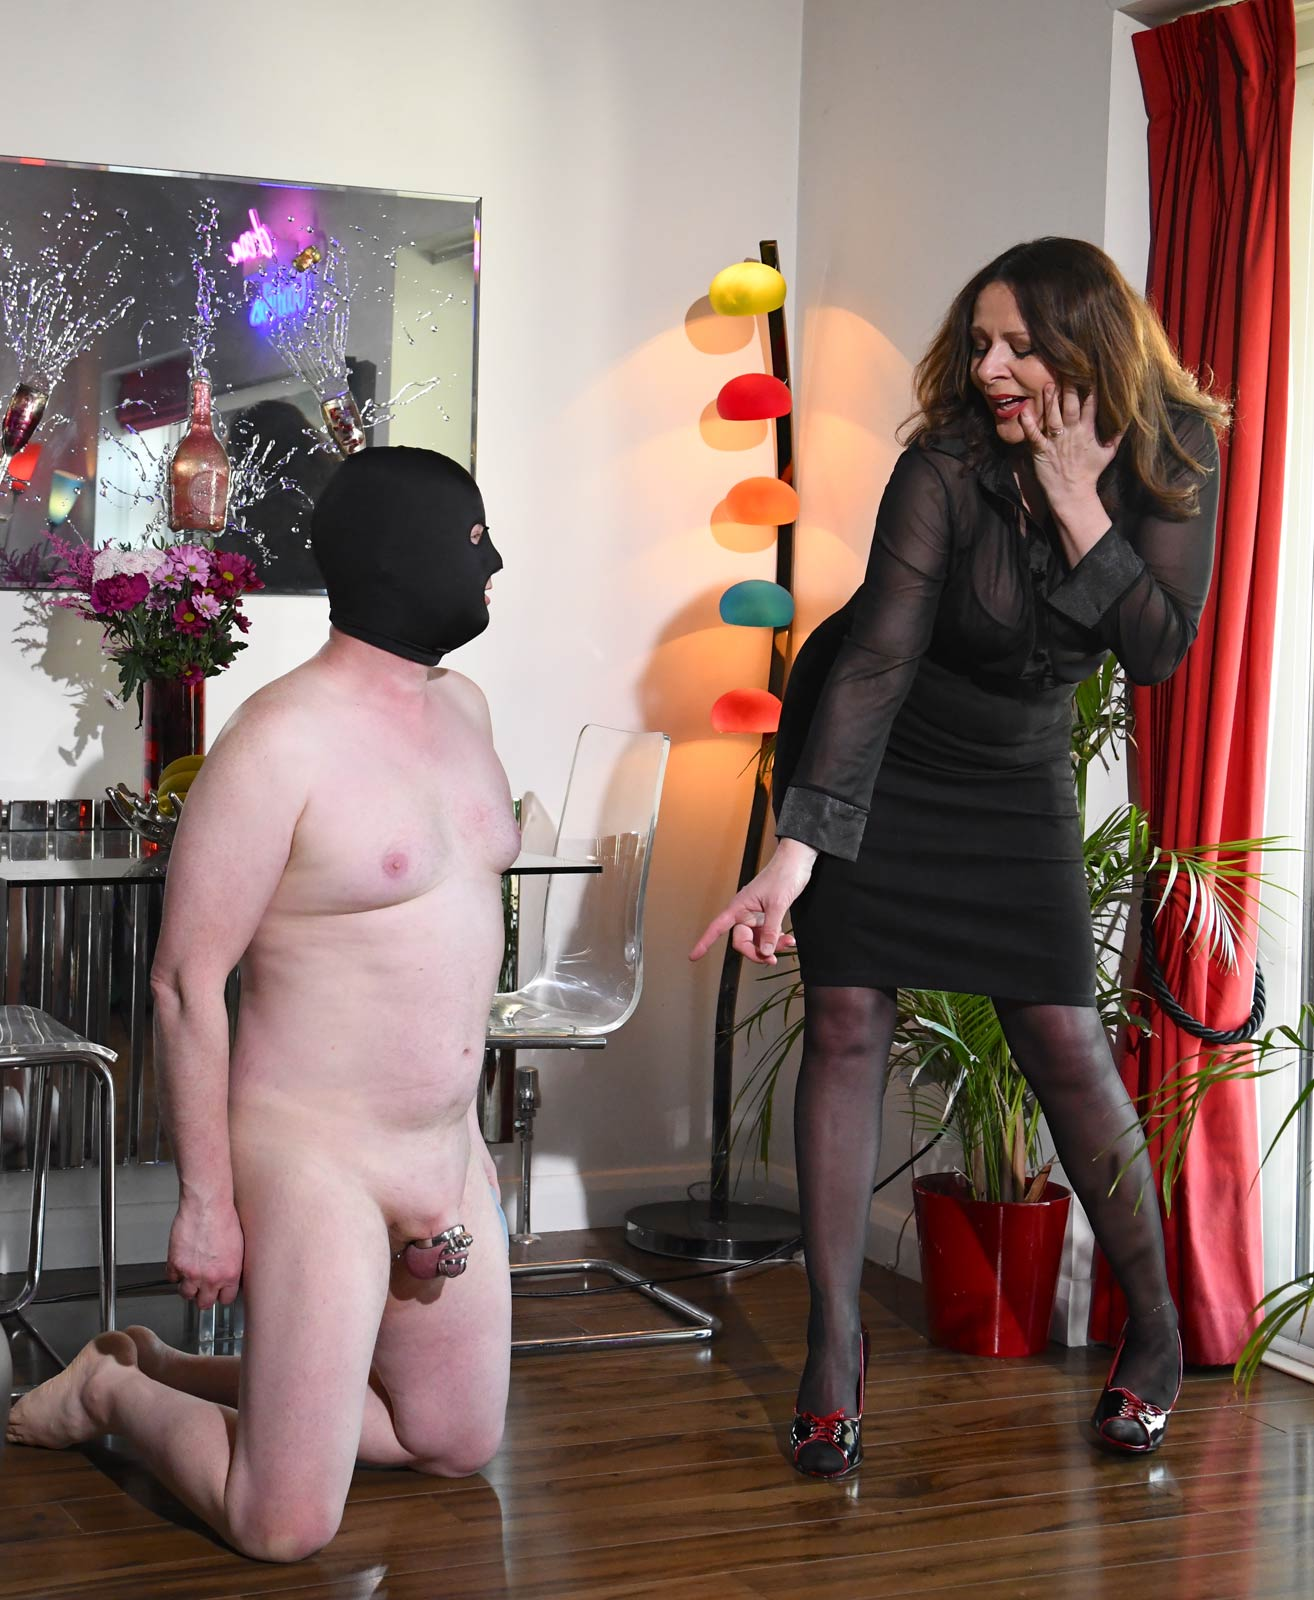 Miss DeLaVere   Cock And Ball Torture Sessions Available